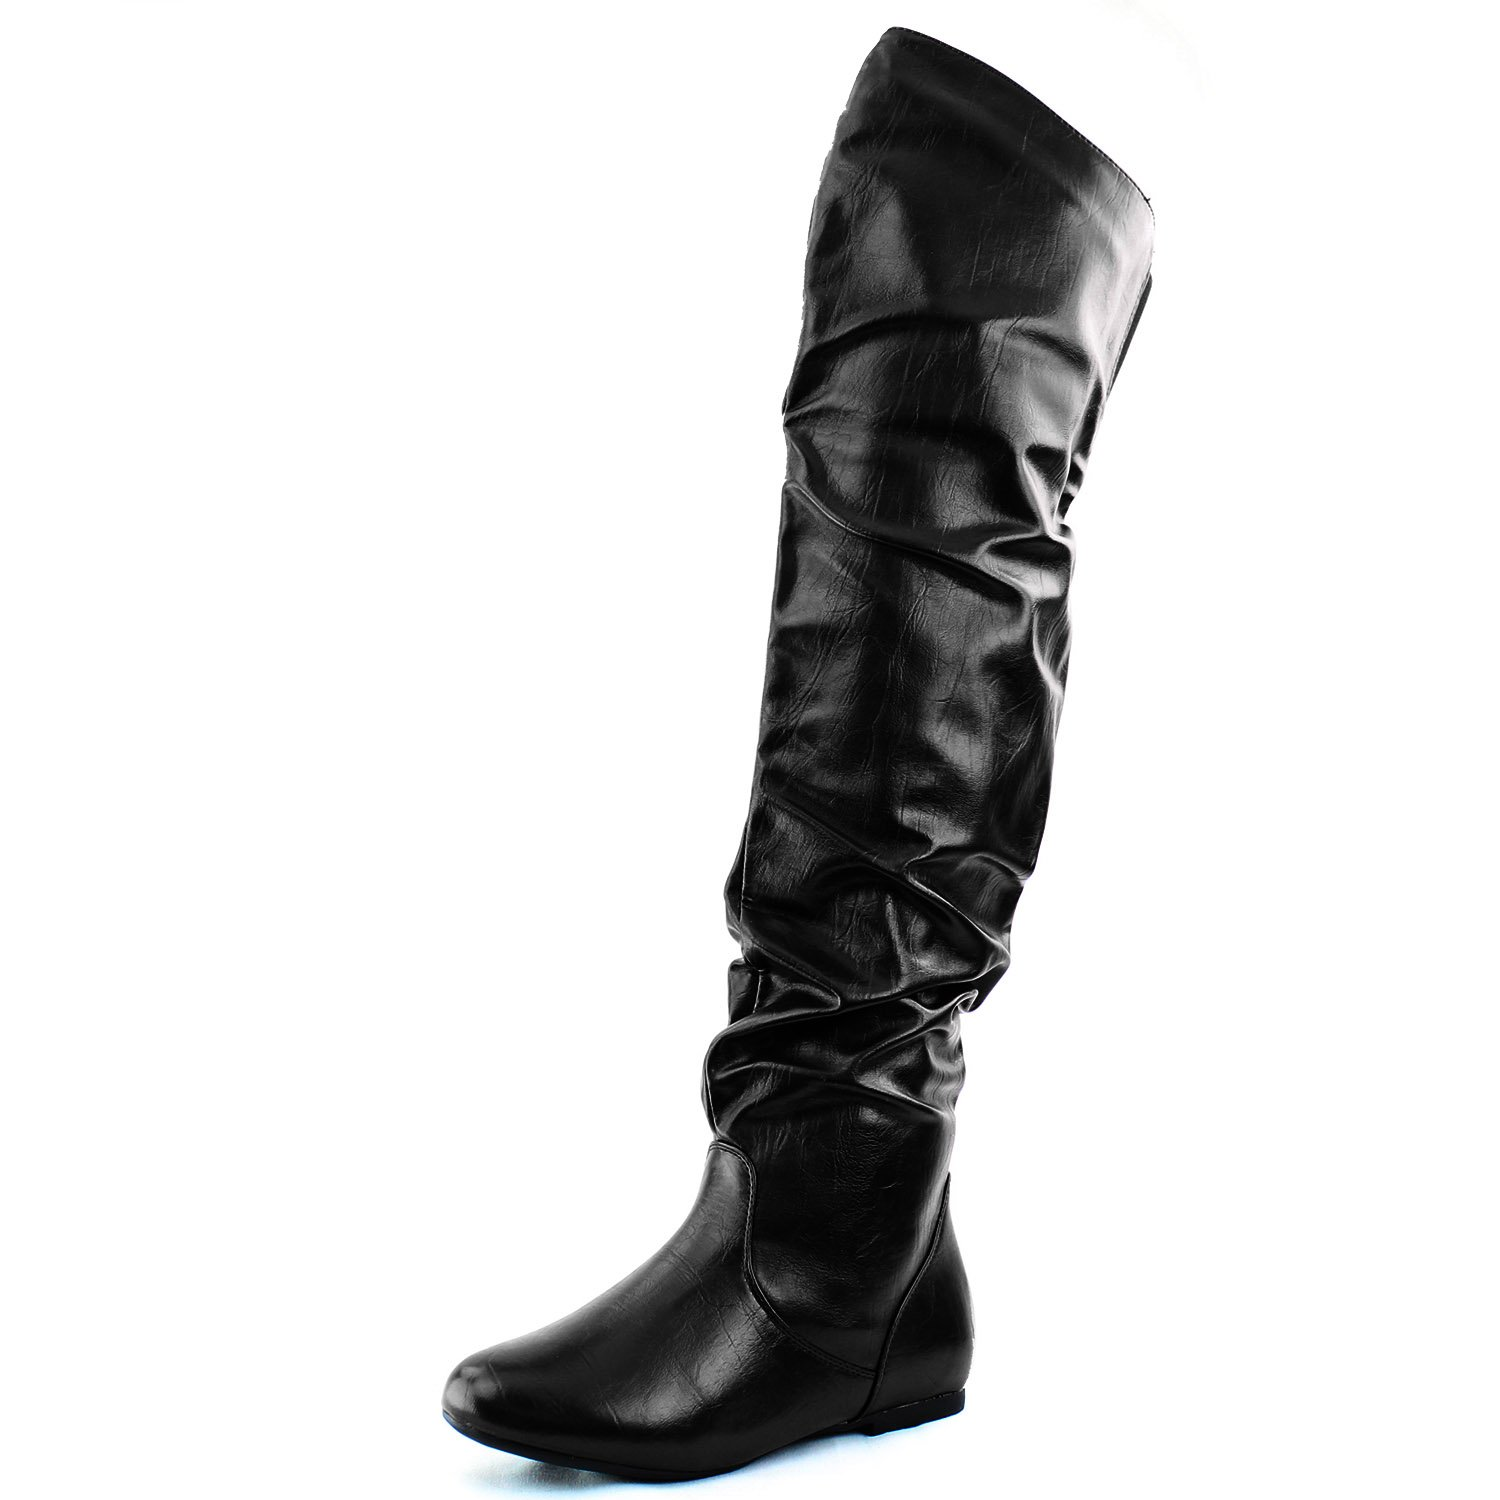 DailyShoes Women's Fashion-Hi Over-the-Knee Thigh High Flat Slouchly Shaft Low Heel Boots Black PU, 9 B(M) US